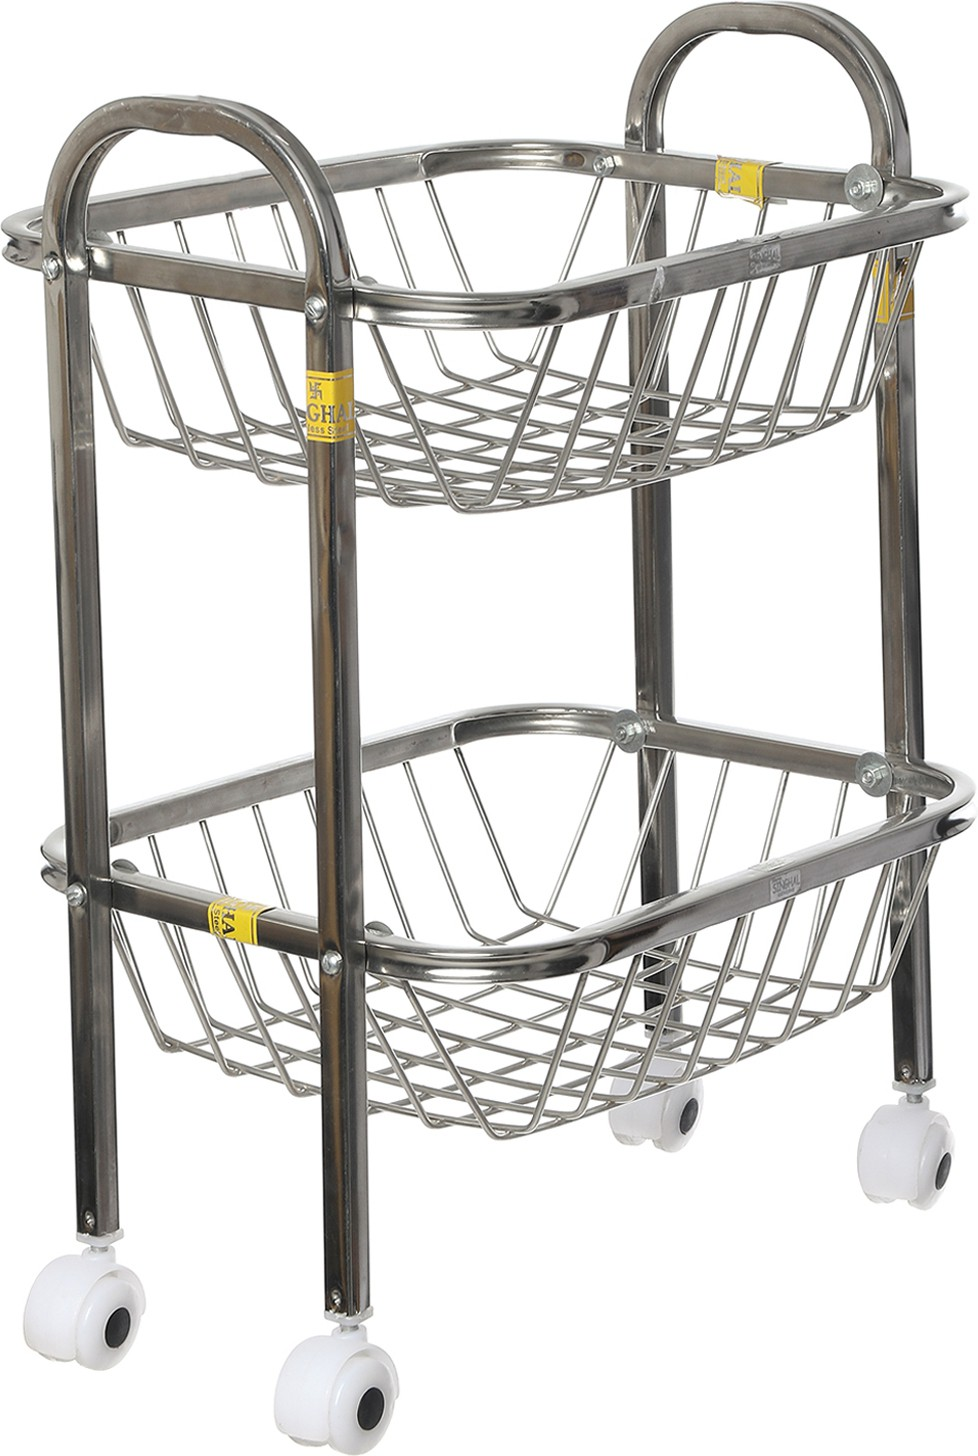 View SHREE SINGHAL Two shelves Stainless Steel Kitchen Trolley Furniture (SHREE SINGHAL)